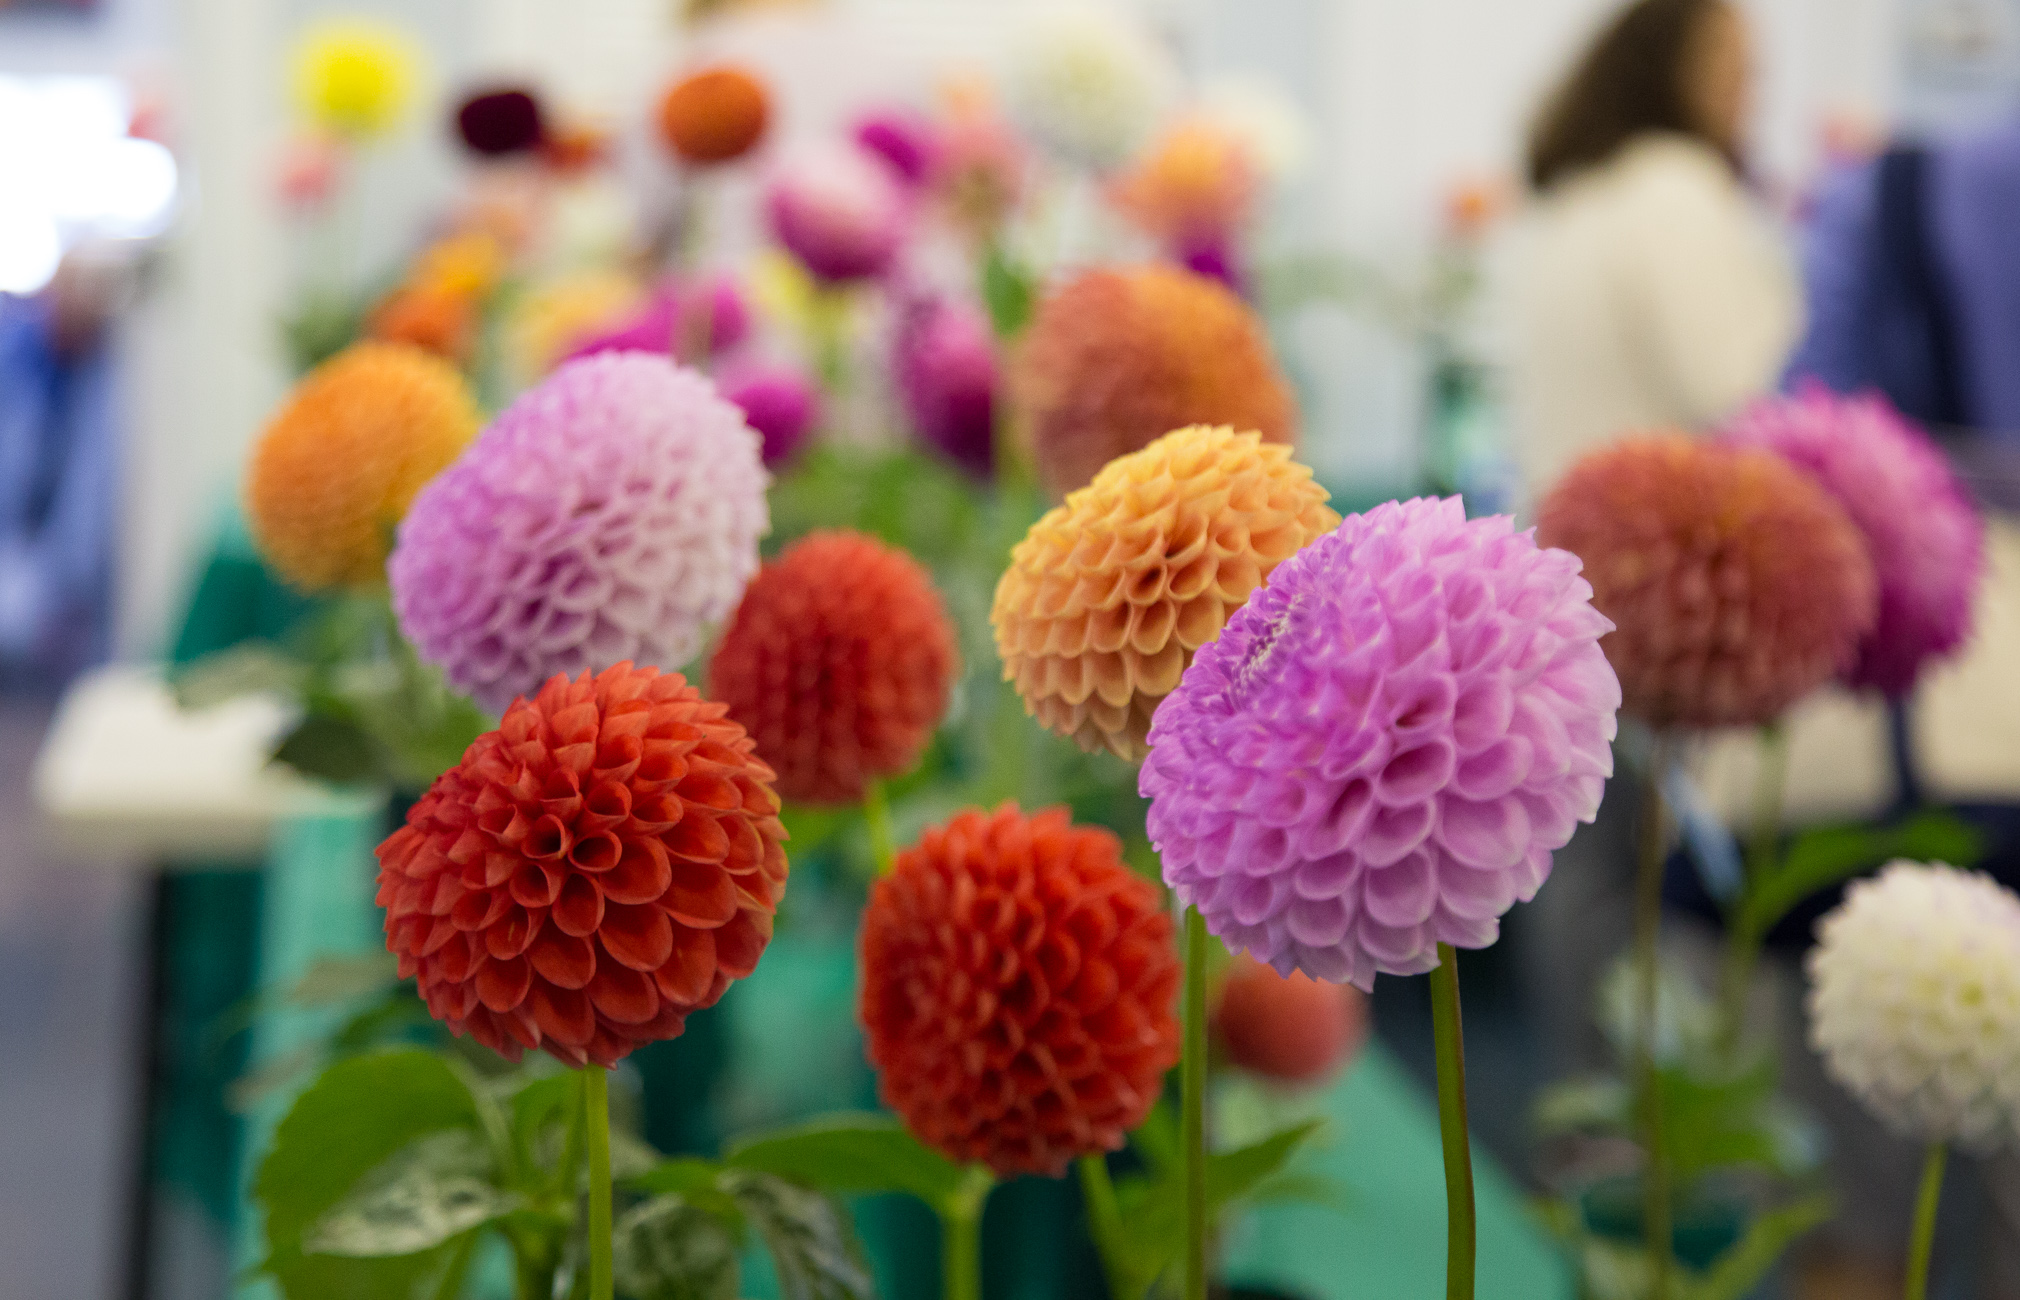 A field of multi-colored dahlias.